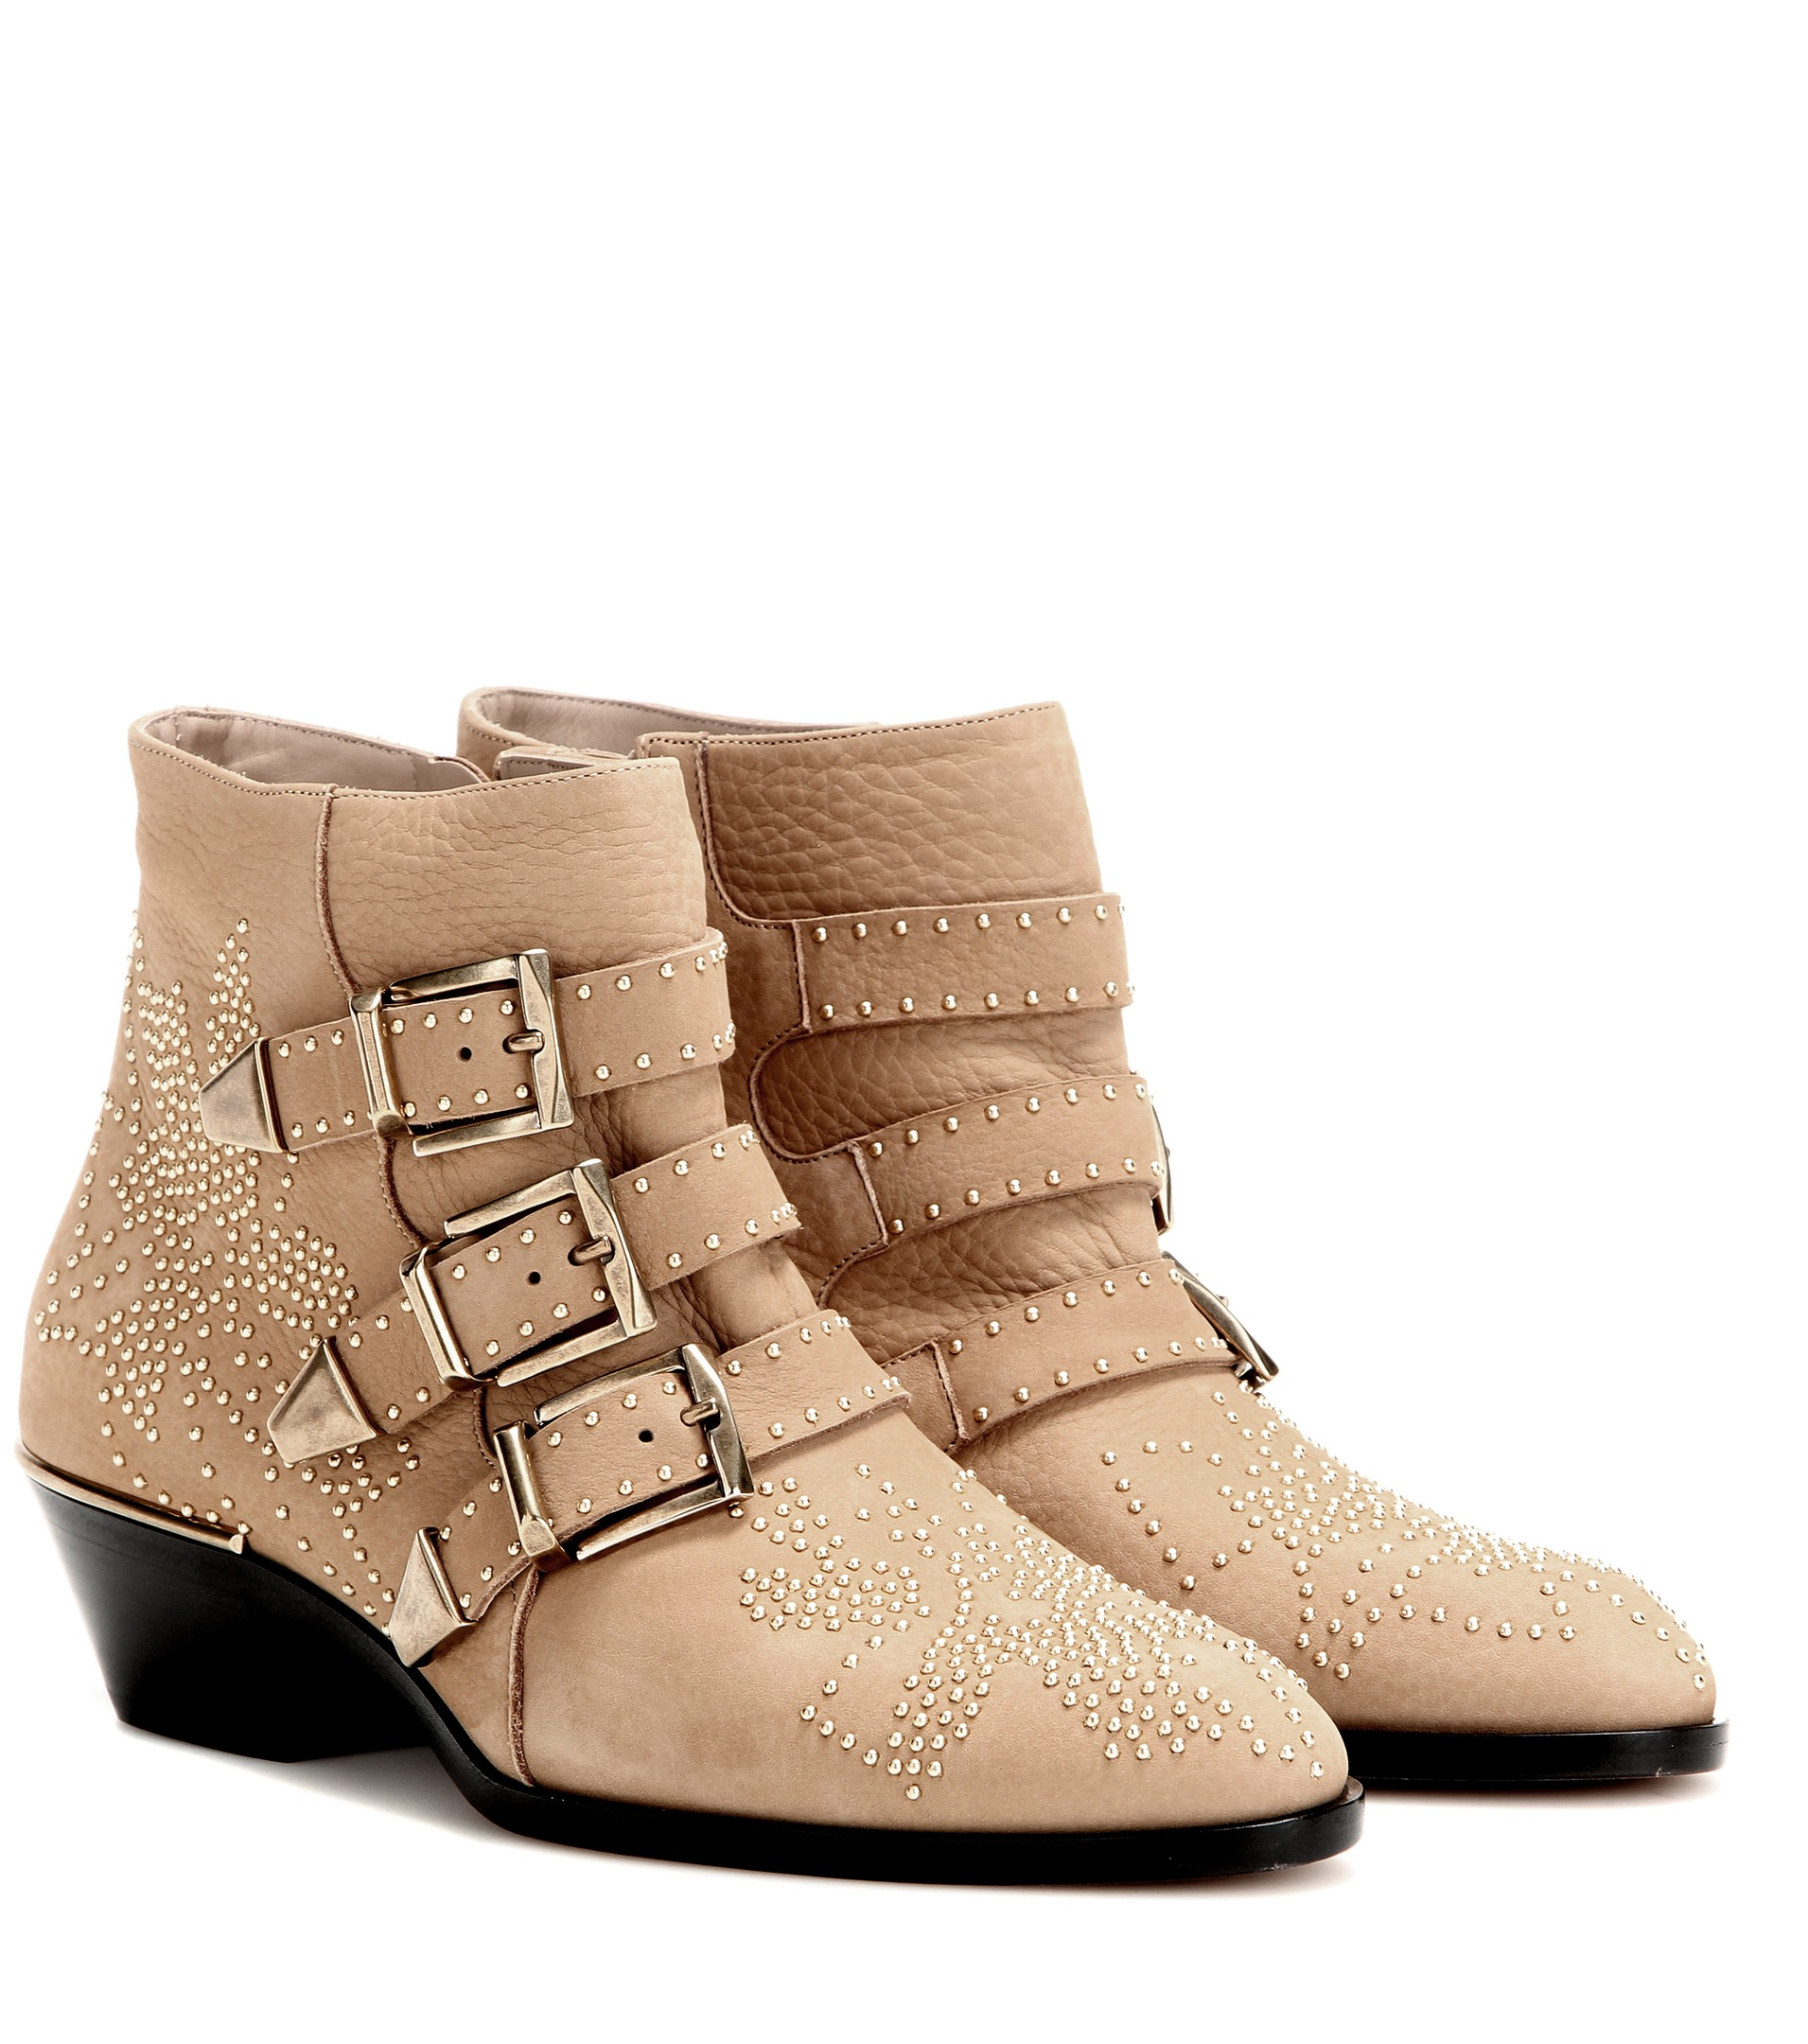 Chloé Susanna suede ankle boots cheap for nice cDK3Yt2aOg